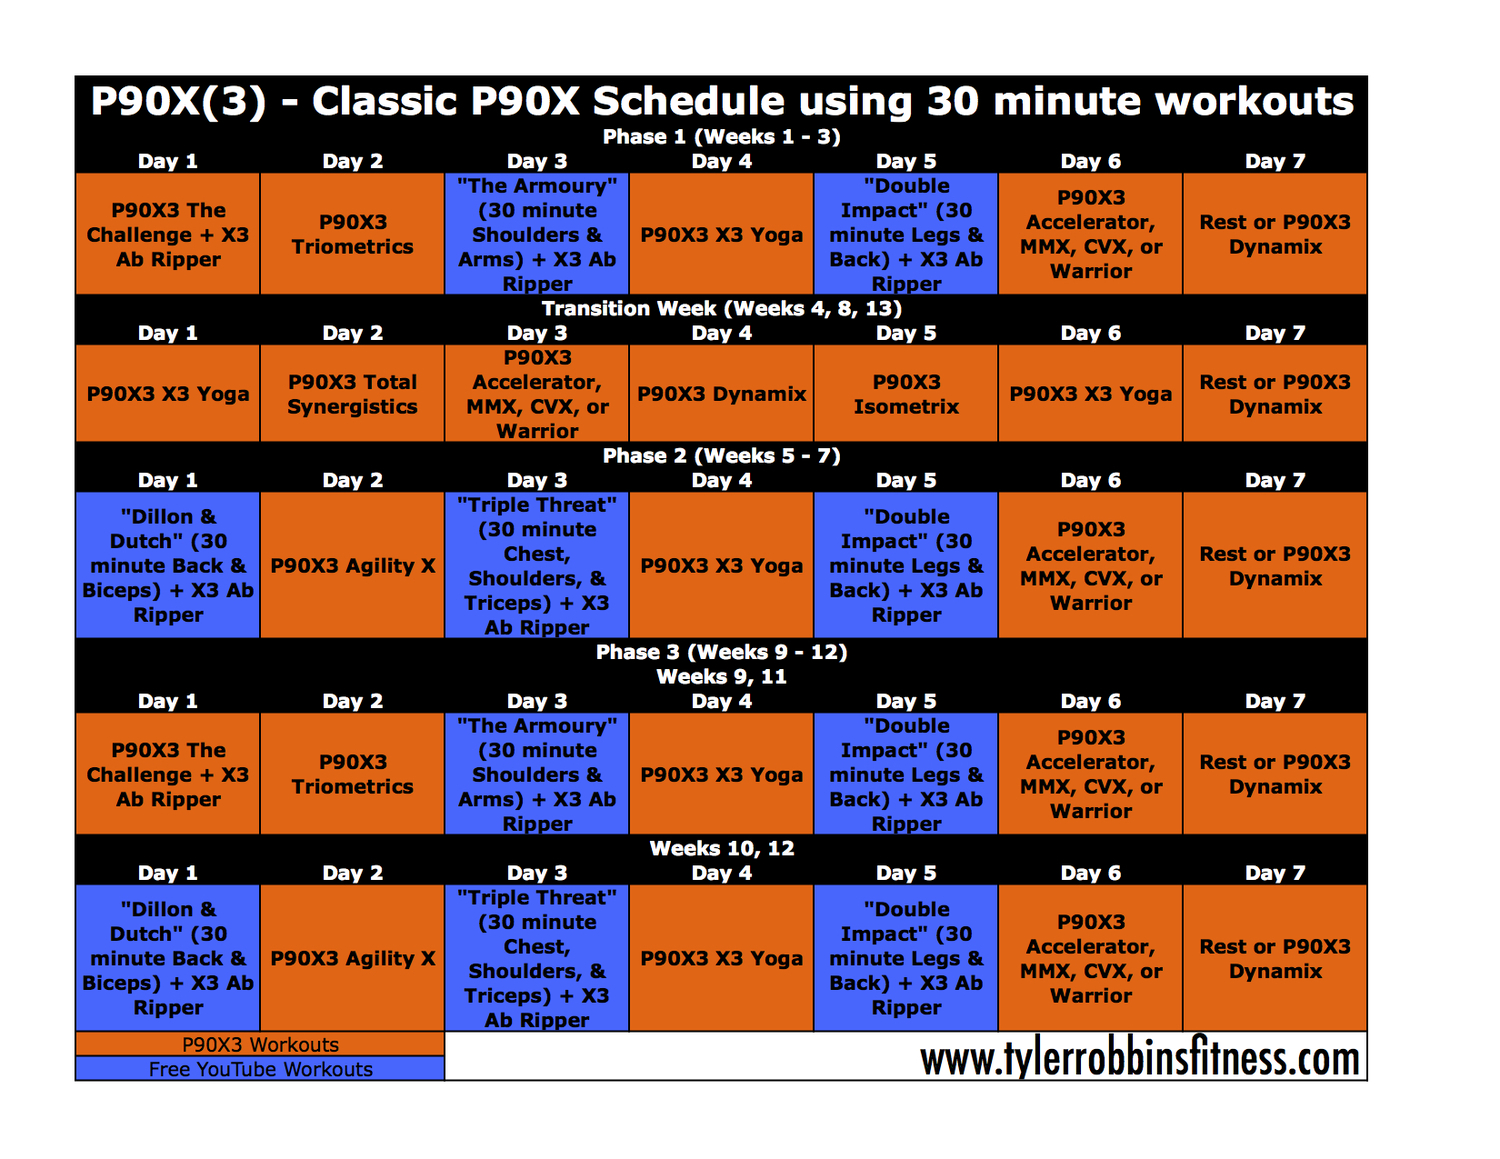 30 minute workouts using the p90x classic schedule — tyler robbins